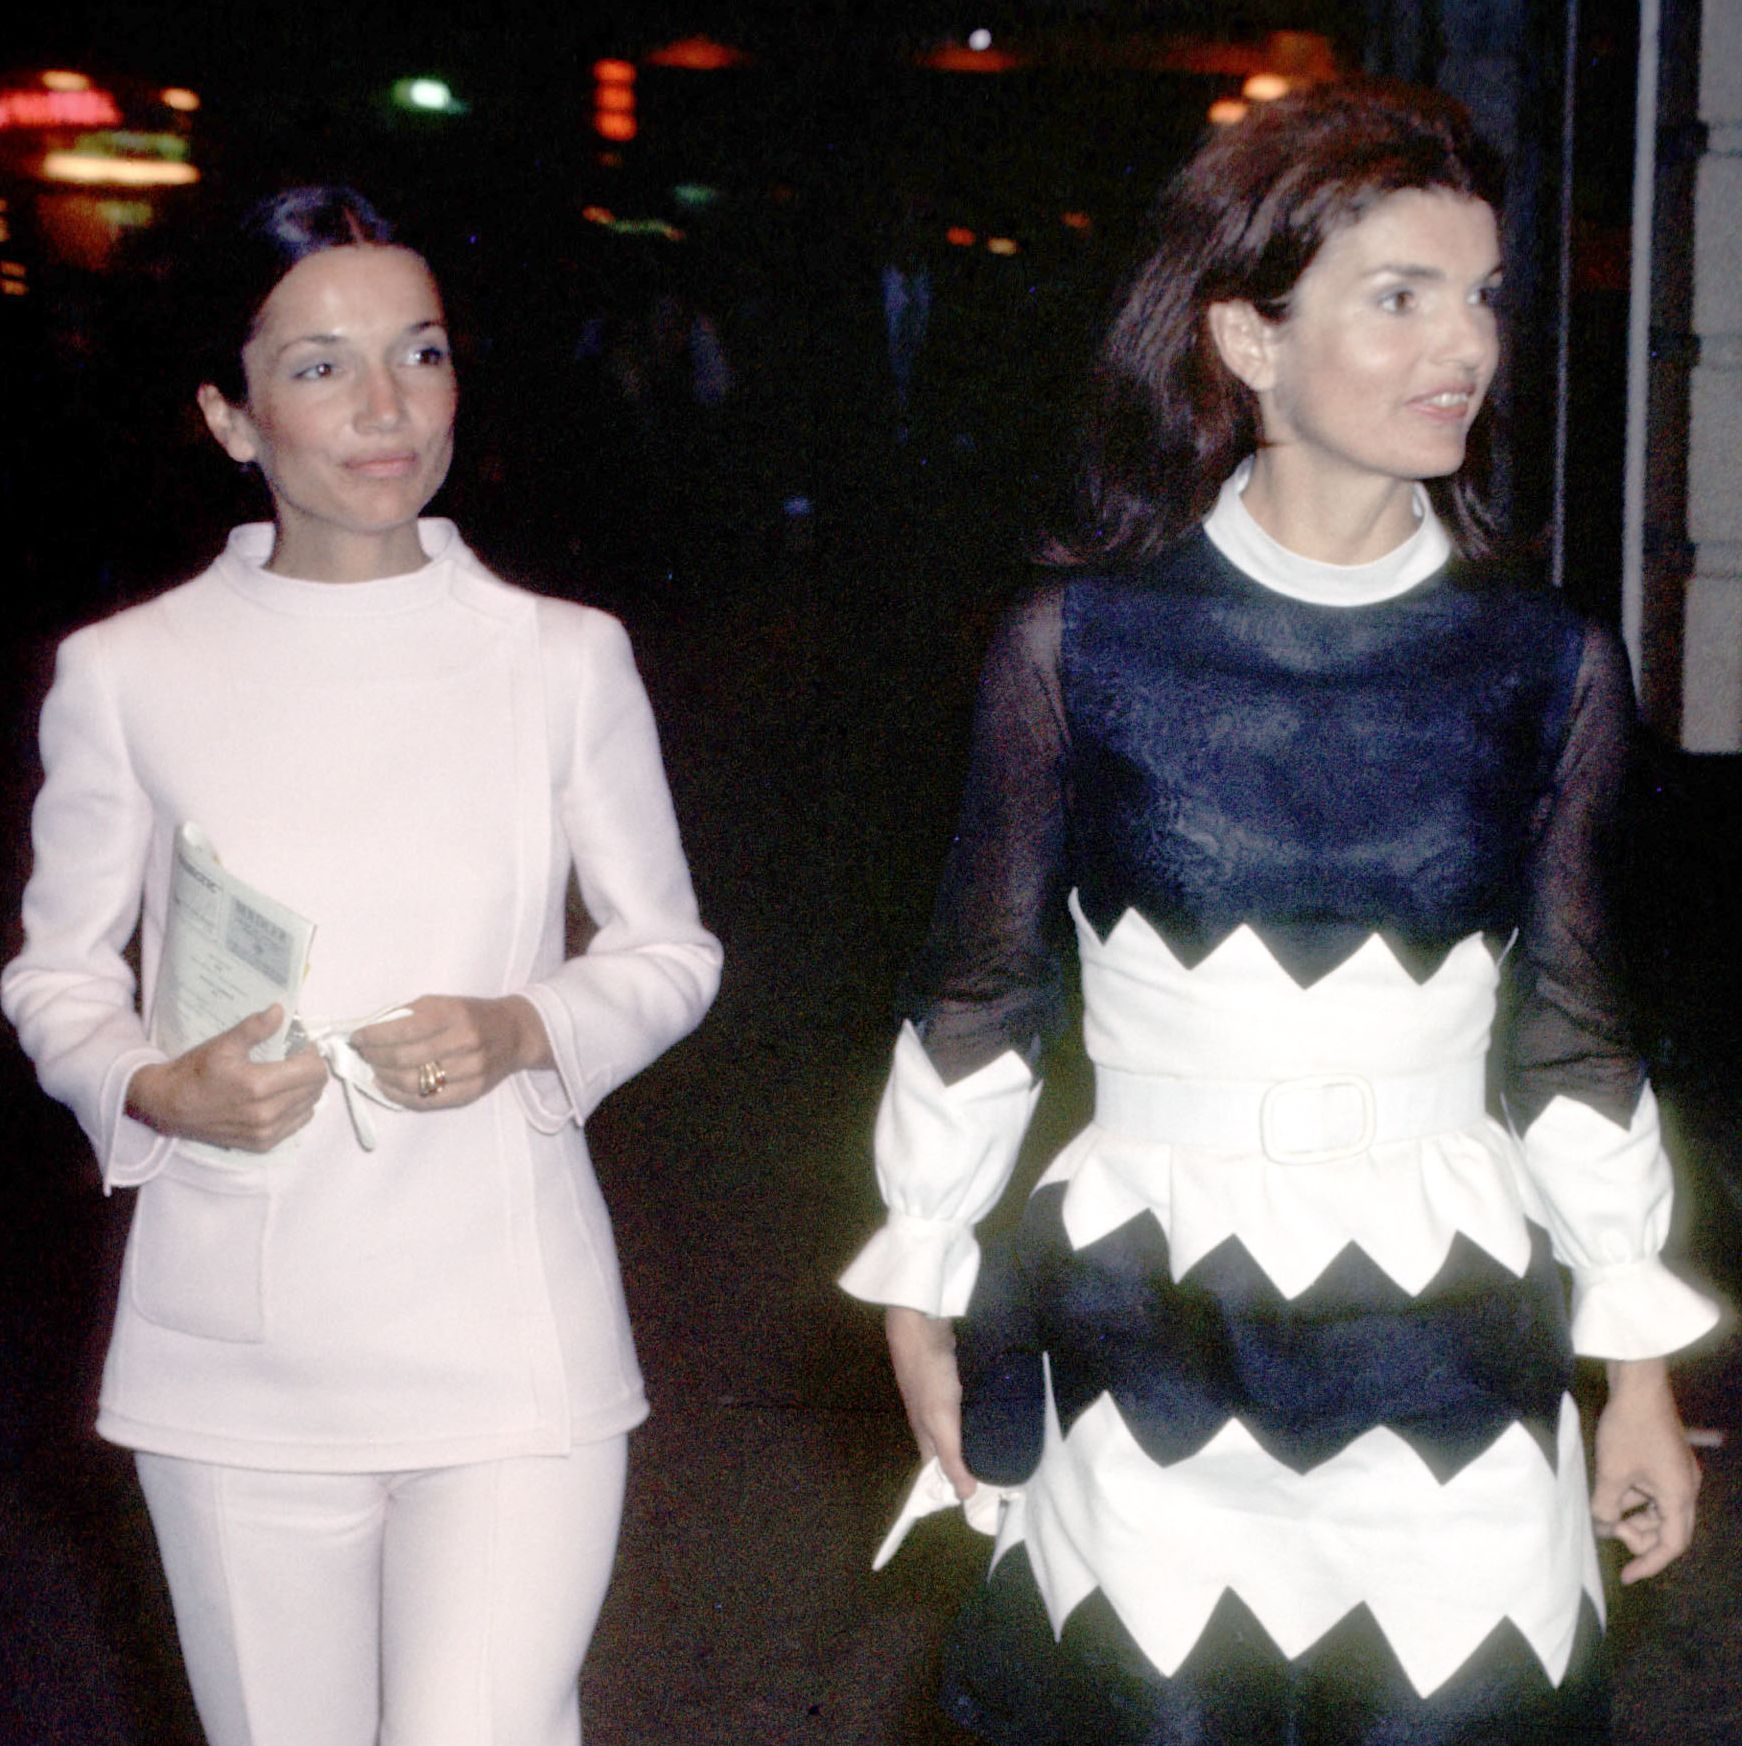 How Lee Radziwill Emotionally Supported Her Sister Jackie Kennedy Following JFK's Assassination